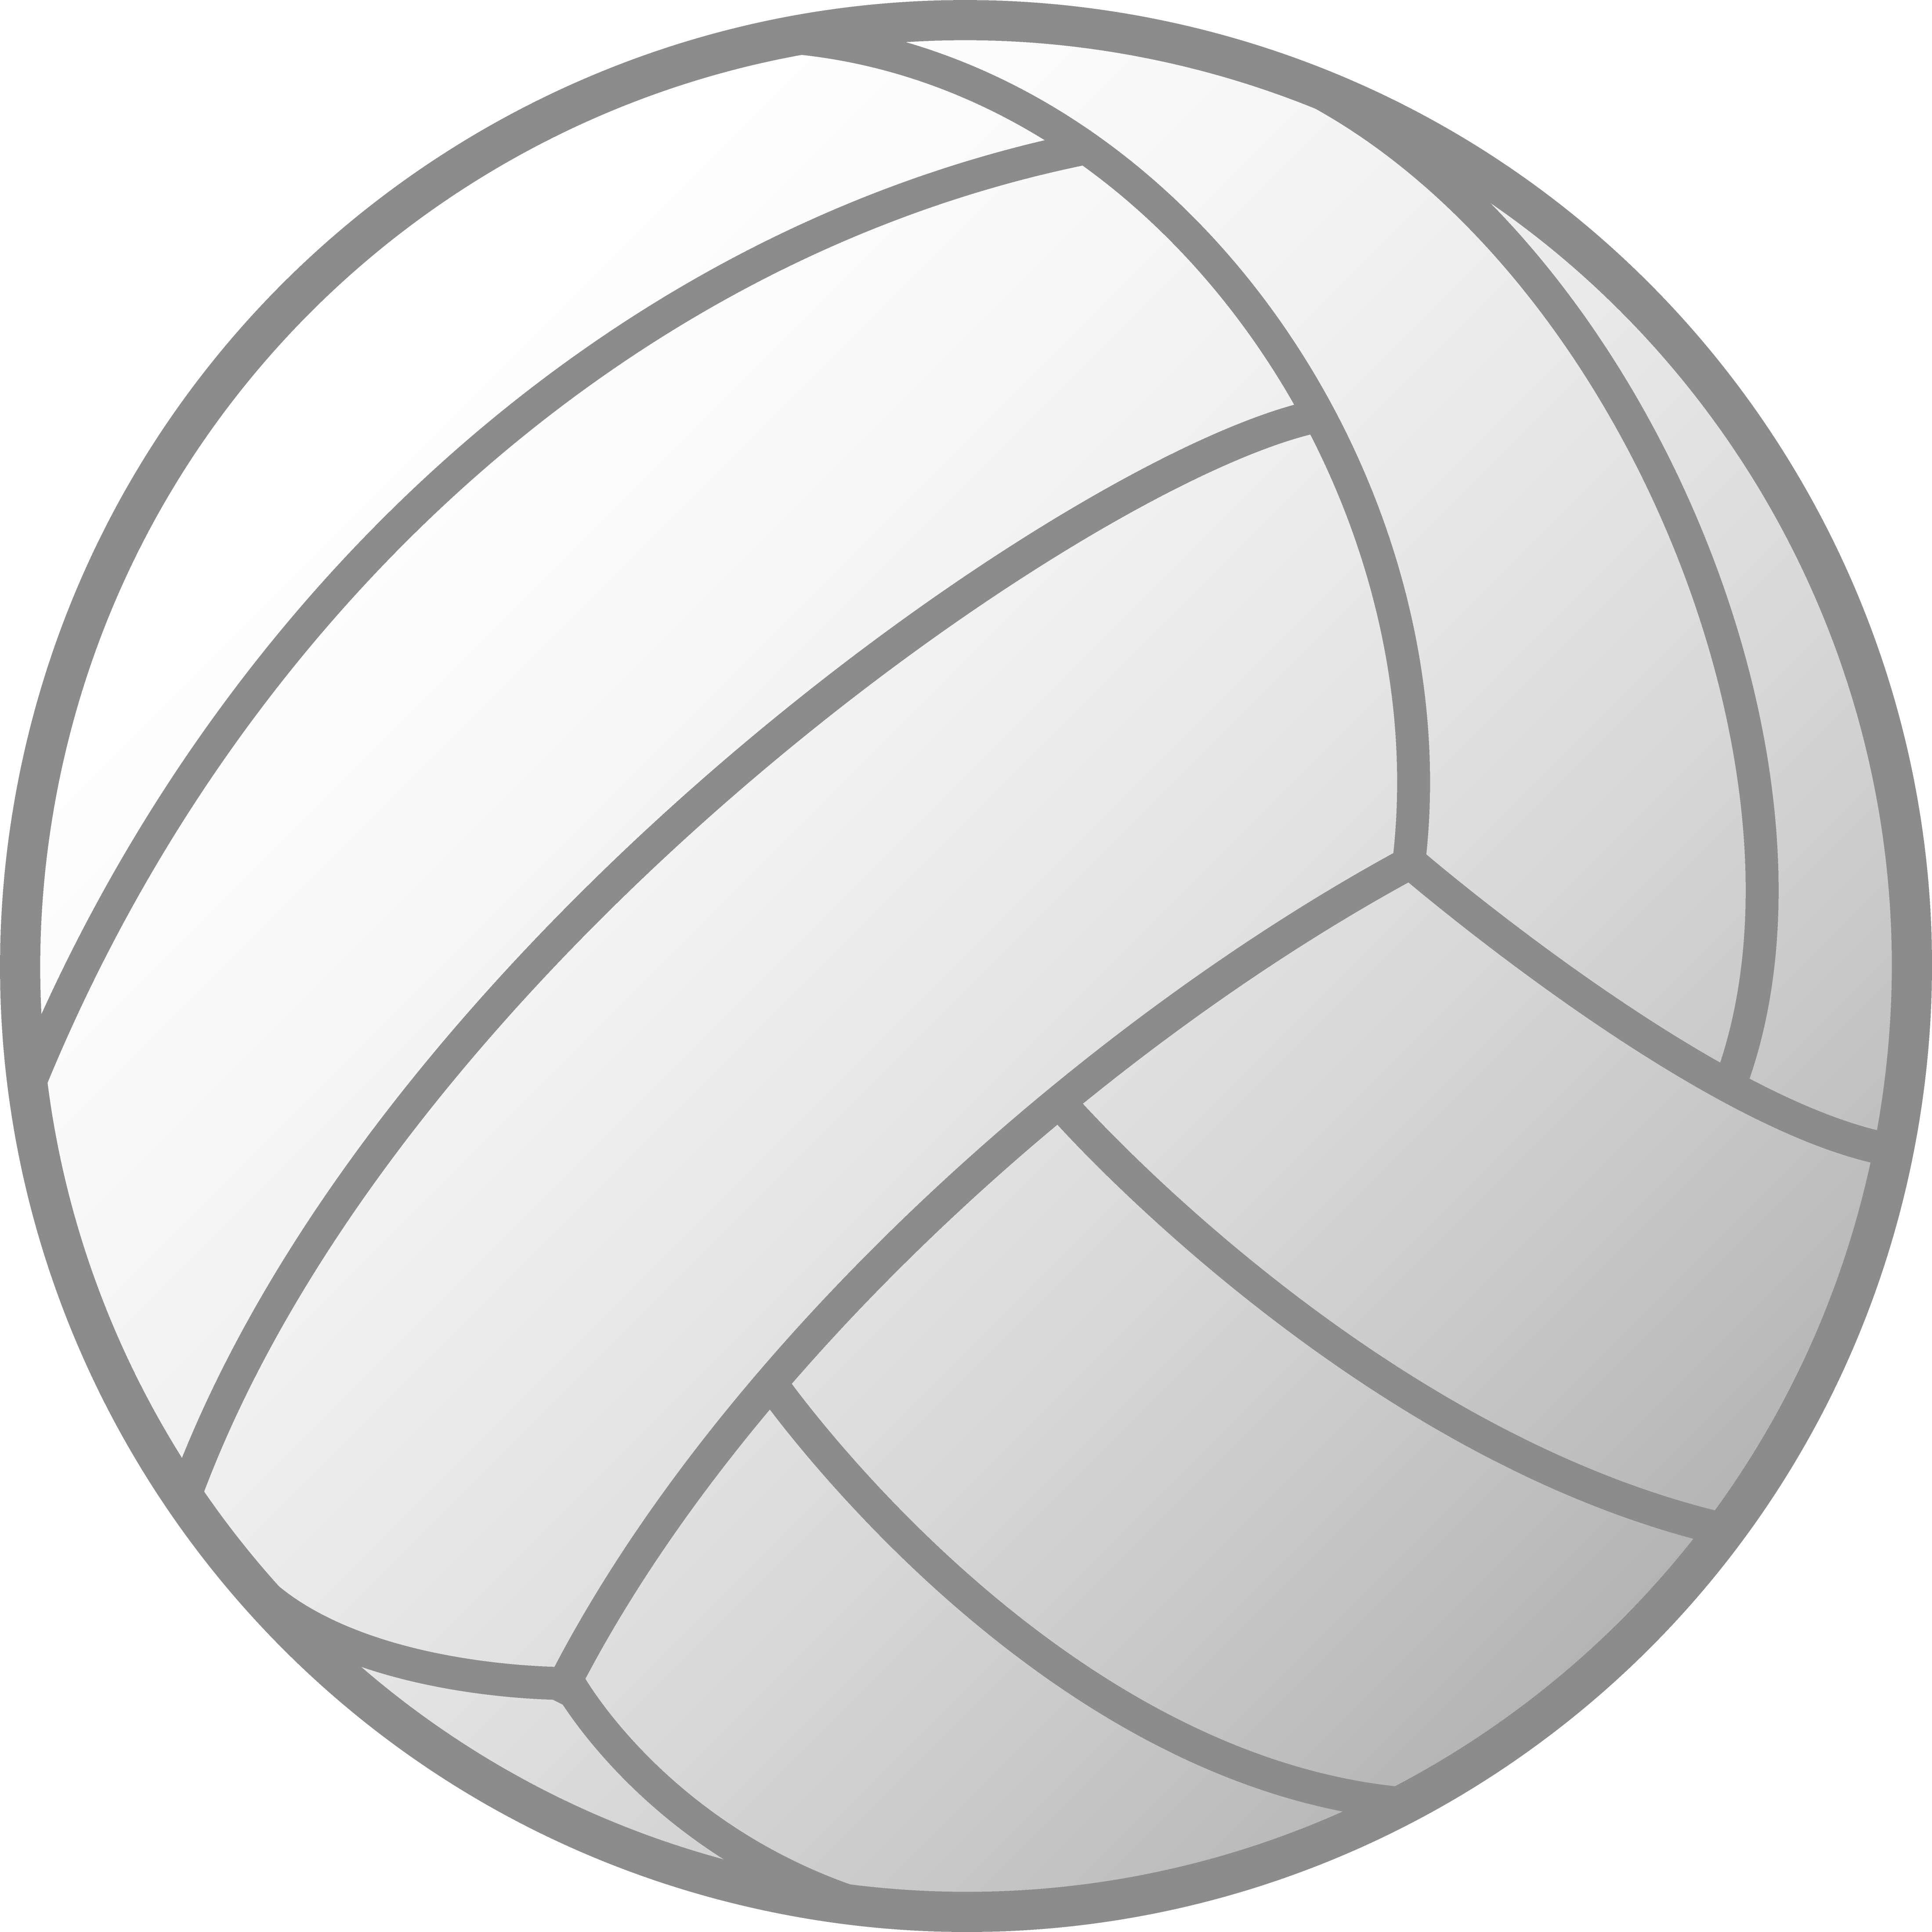 Volleyball clip simple. White free art grey